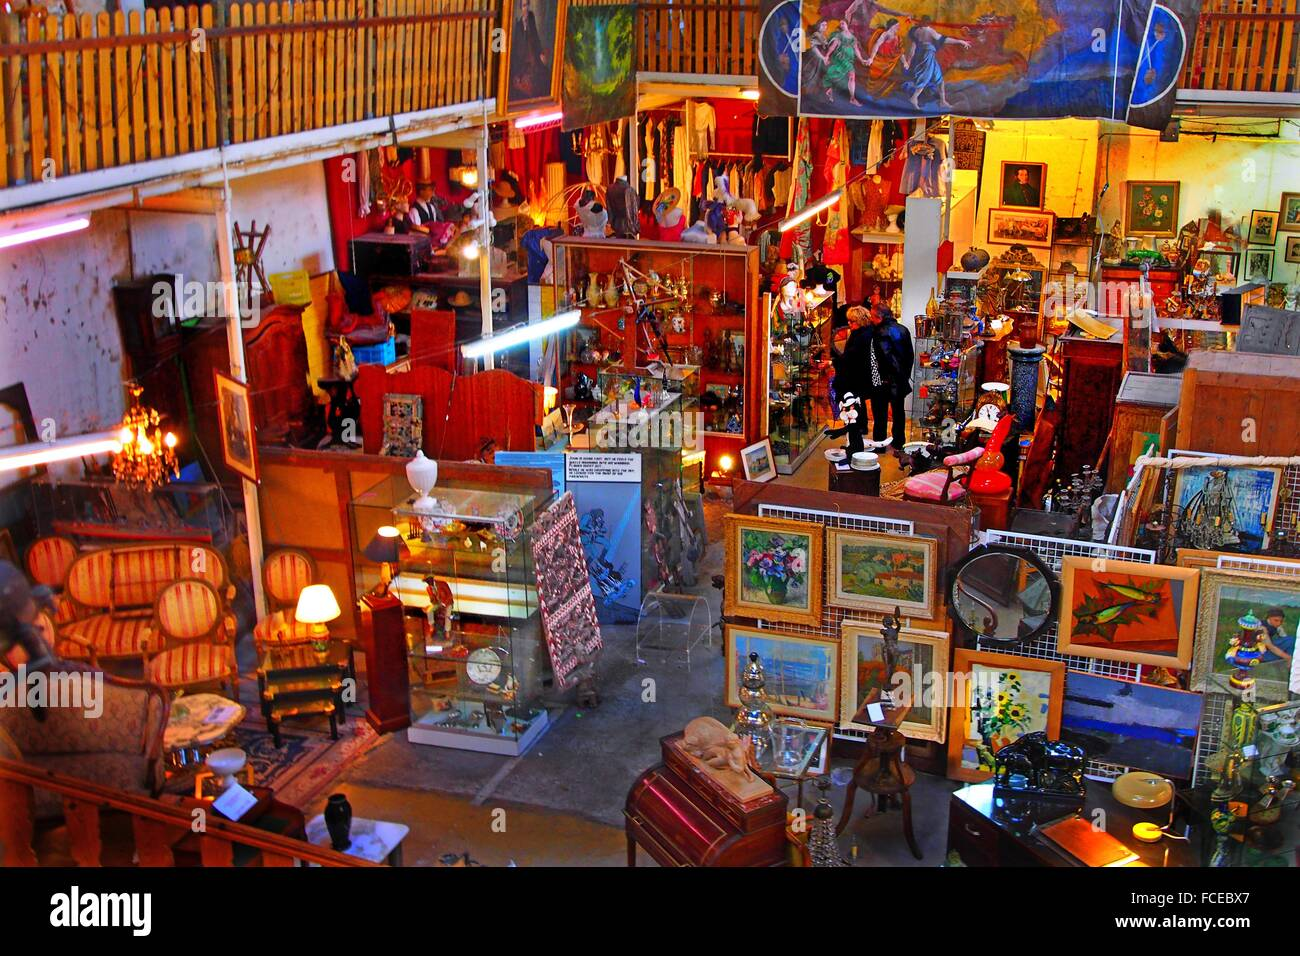 Second hand shop at Saint Michel, at Bordeaux, Gironde, Aquitaine, France - Stock Image